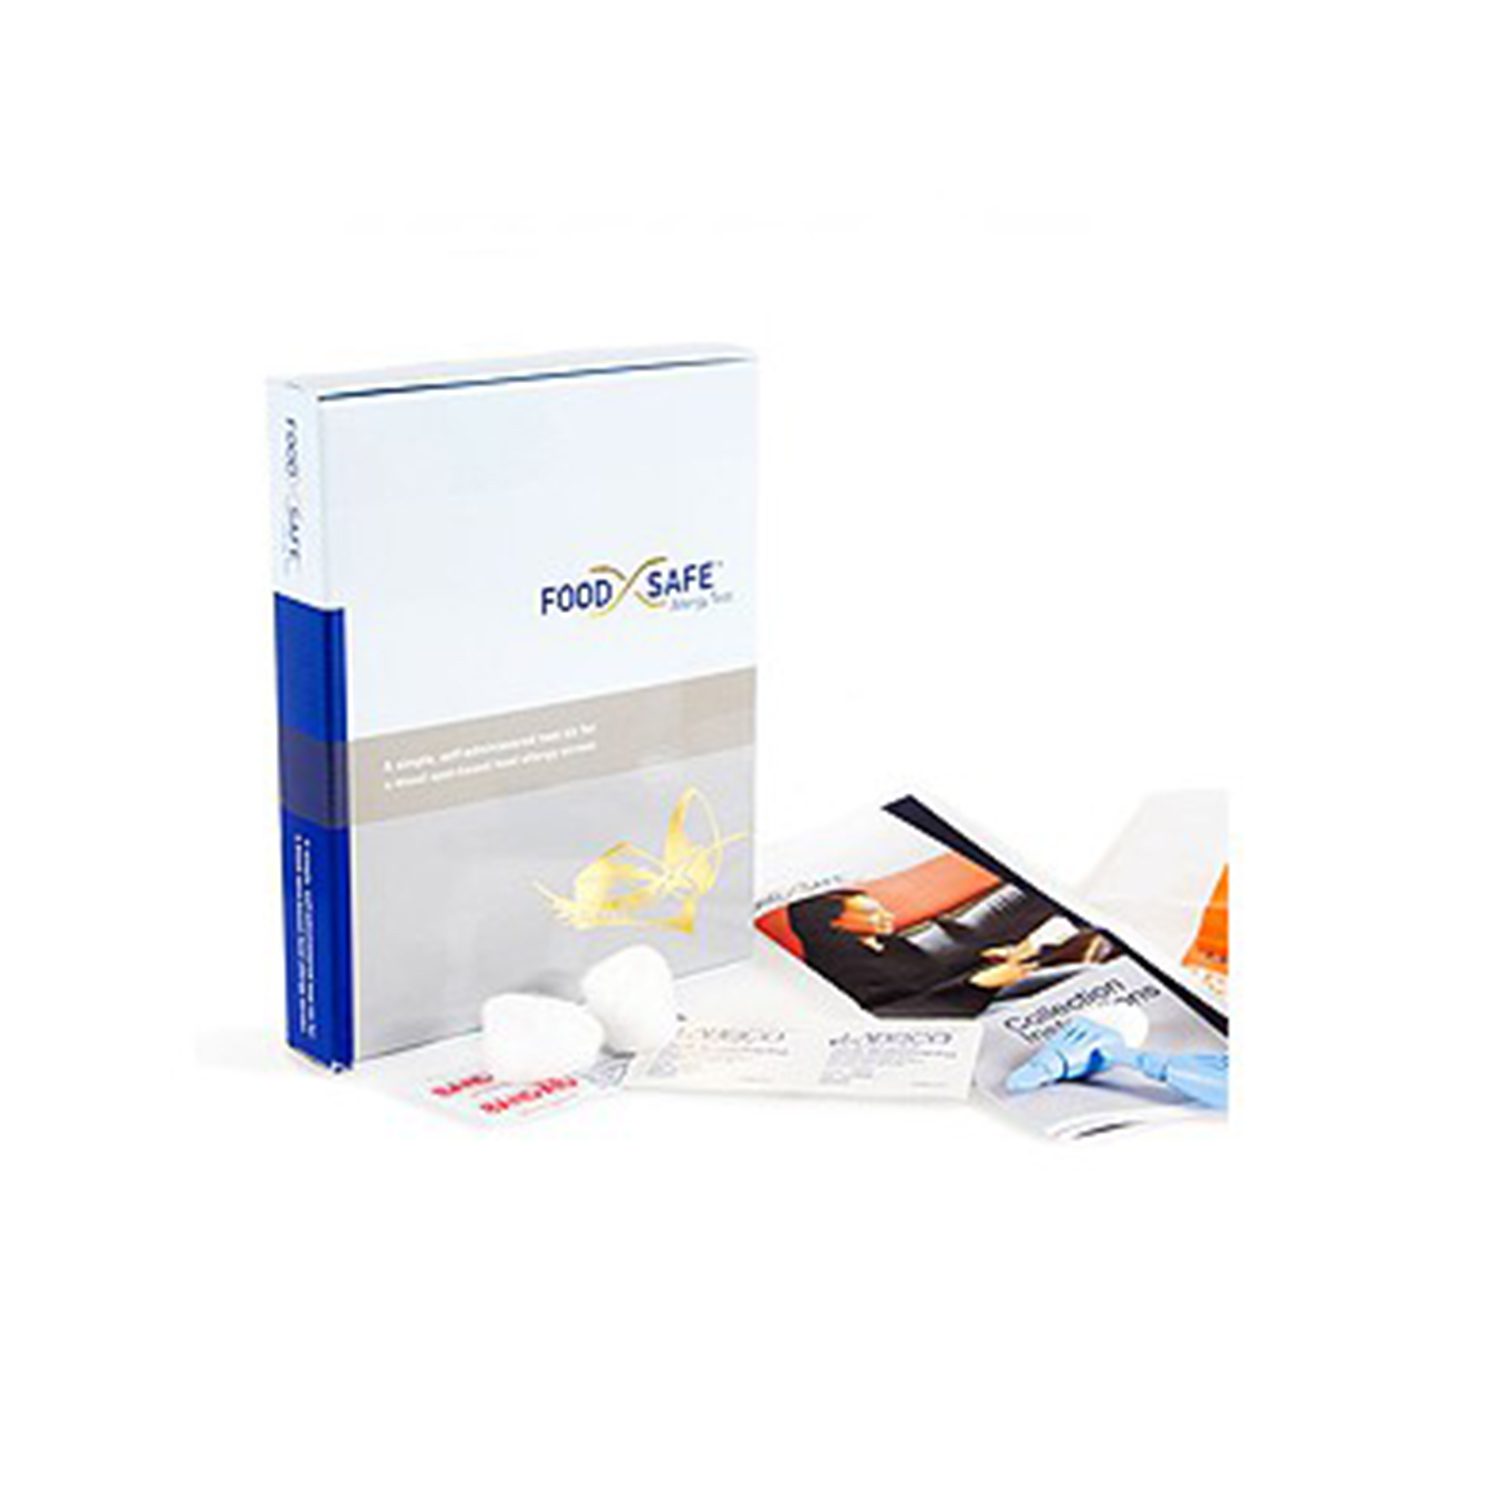 Foodsafe Kit